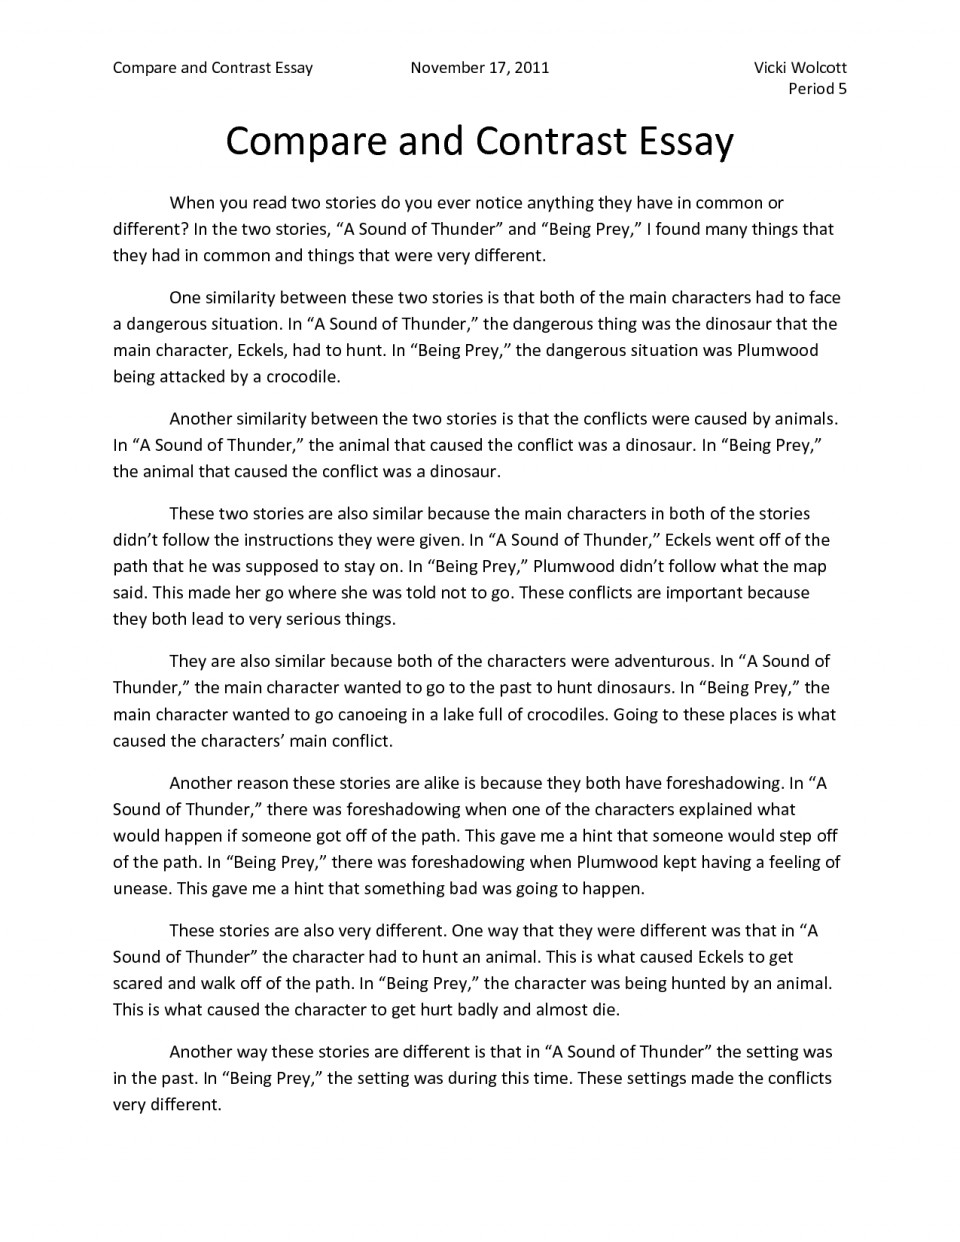 003 Perfect Essays Compare And Contrast Essay Introduction Example How To Write College Striking Examples Elementary Fourth Grade For Students 960